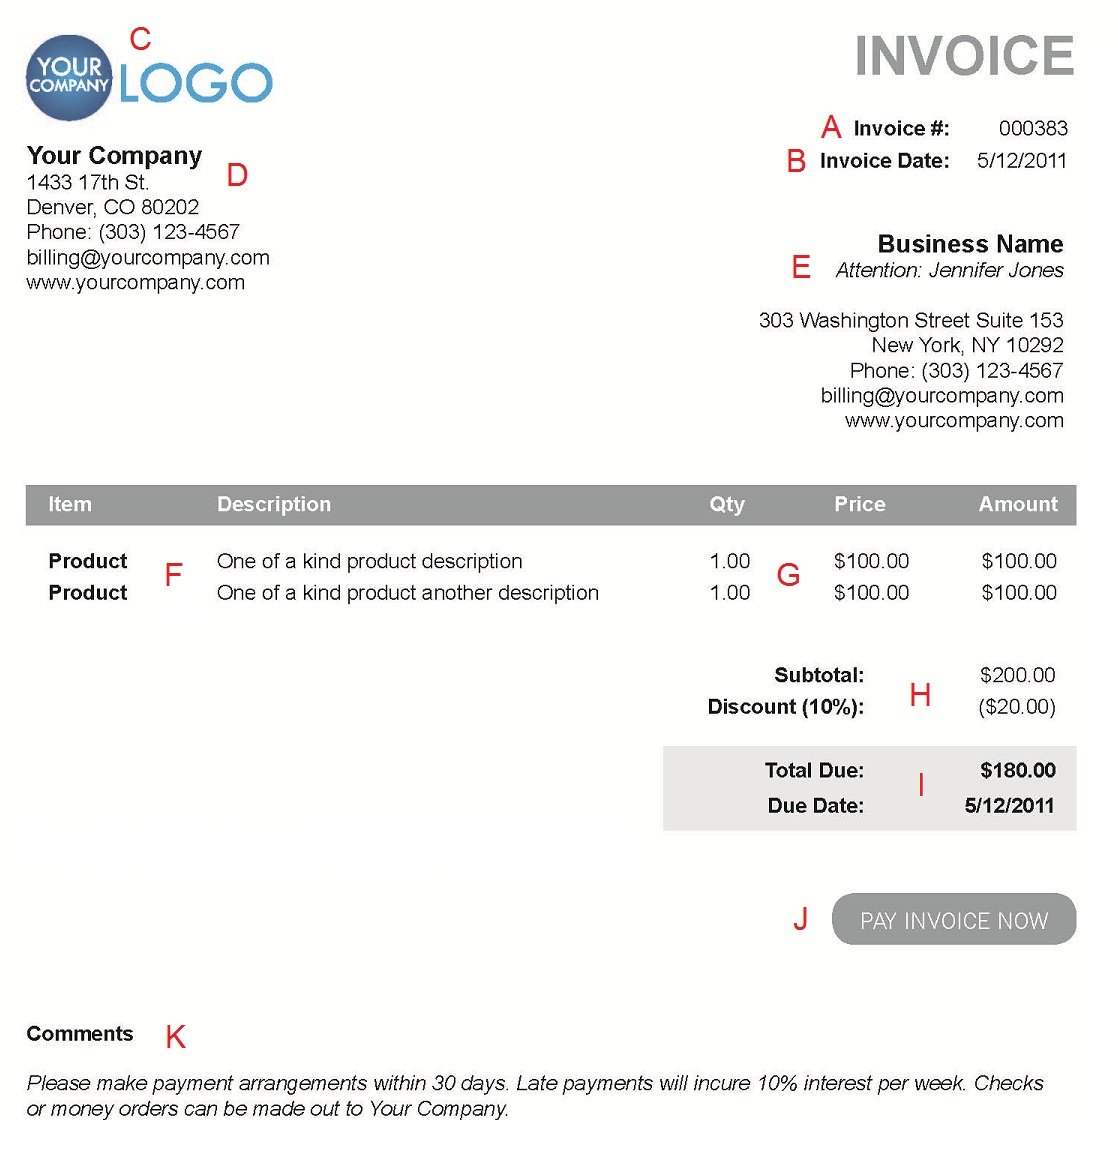 Gpwaus  Pleasing The  Different Sections Of An Electronic Payment Invoice With Interesting A  With Archaic Microsoft Invoice Template Also Blank Invoice Template Pdf In Addition Create Invoice Online And Whats A Invoice As Well As Invoice Template Microsoft Word Additionally Dhl Commercial Invoice From Paysimplecom With Gpwaus  Interesting The  Different Sections Of An Electronic Payment Invoice With Archaic A  And Pleasing Microsoft Invoice Template Also Blank Invoice Template Pdf In Addition Create Invoice Online From Paysimplecom